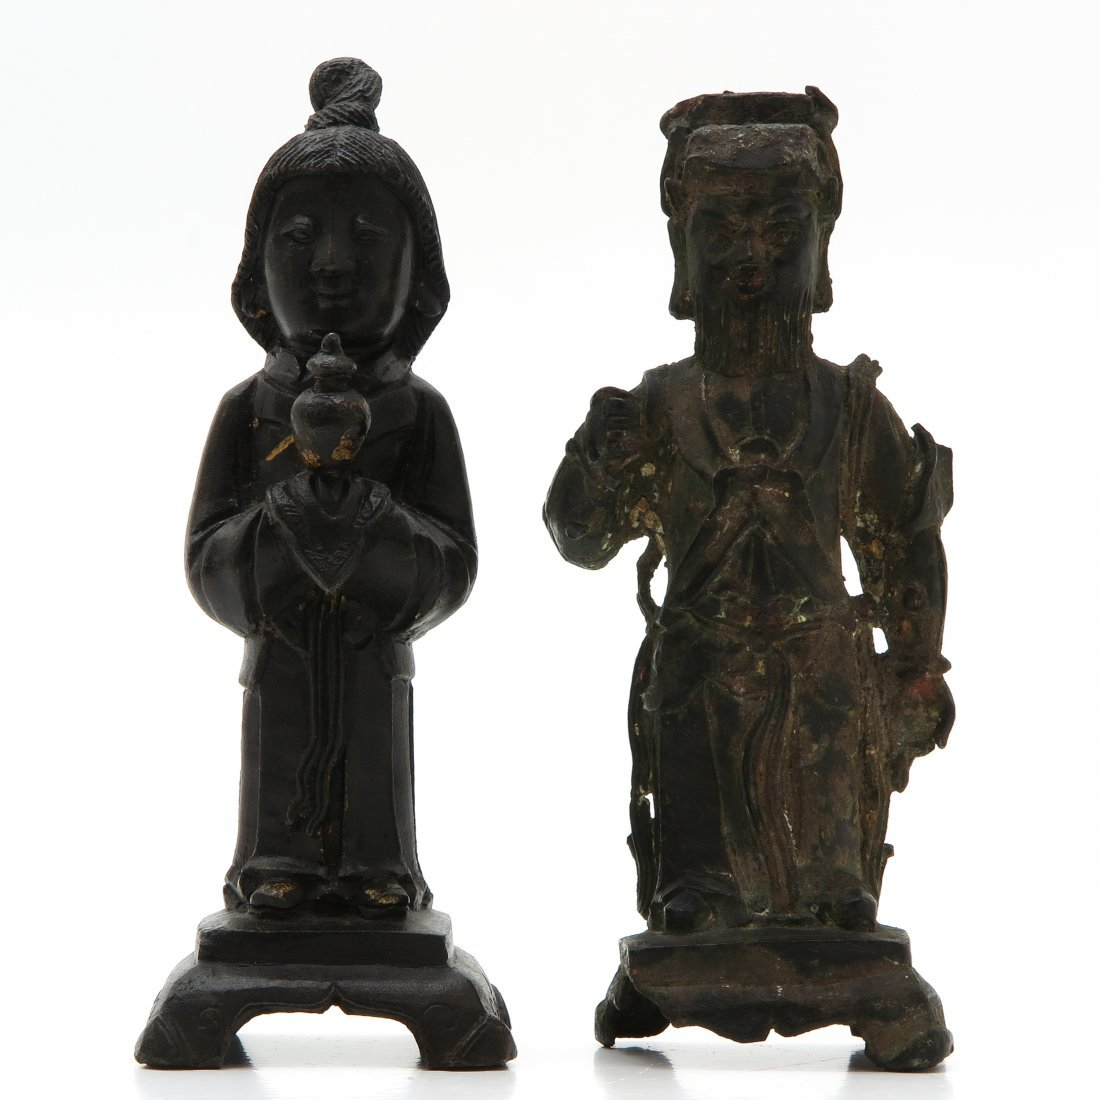 Lot of 2 Chinese Bronze Sculptures